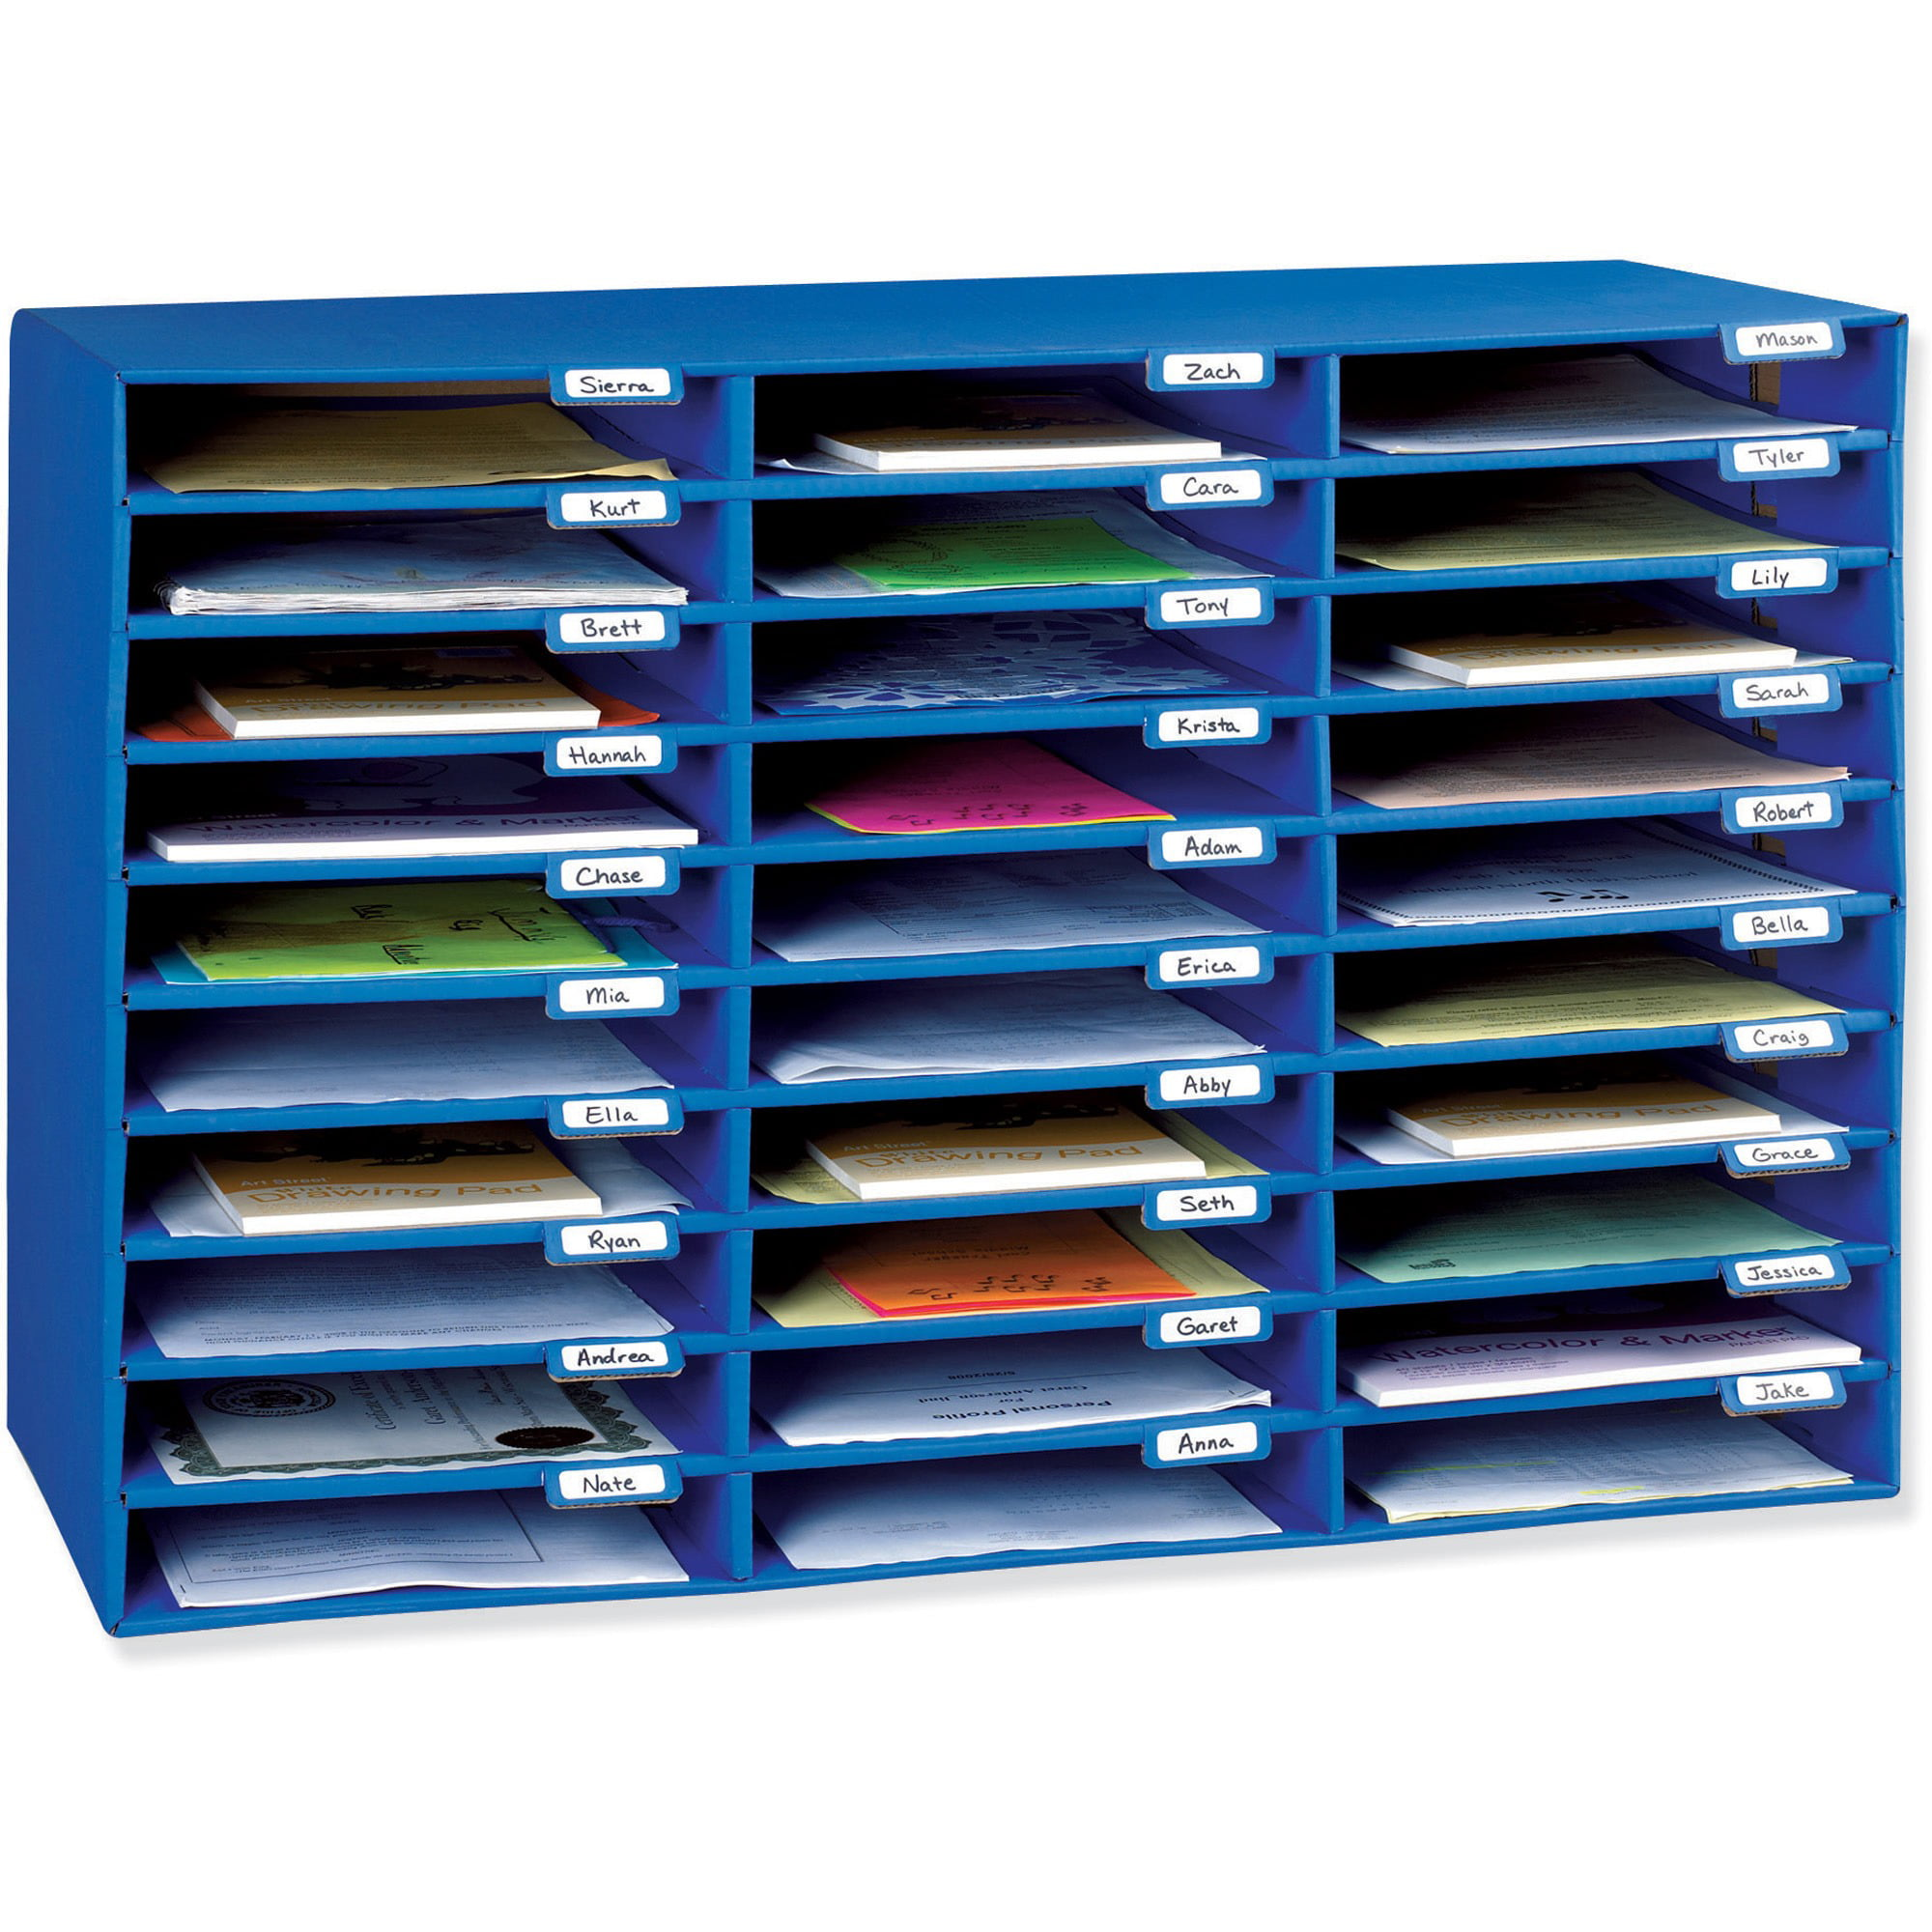 "Classroom Keepers 30 Slot Mailbox, Blue, 21""H x 31.63""W x 12.75""D Piece by Pacon"